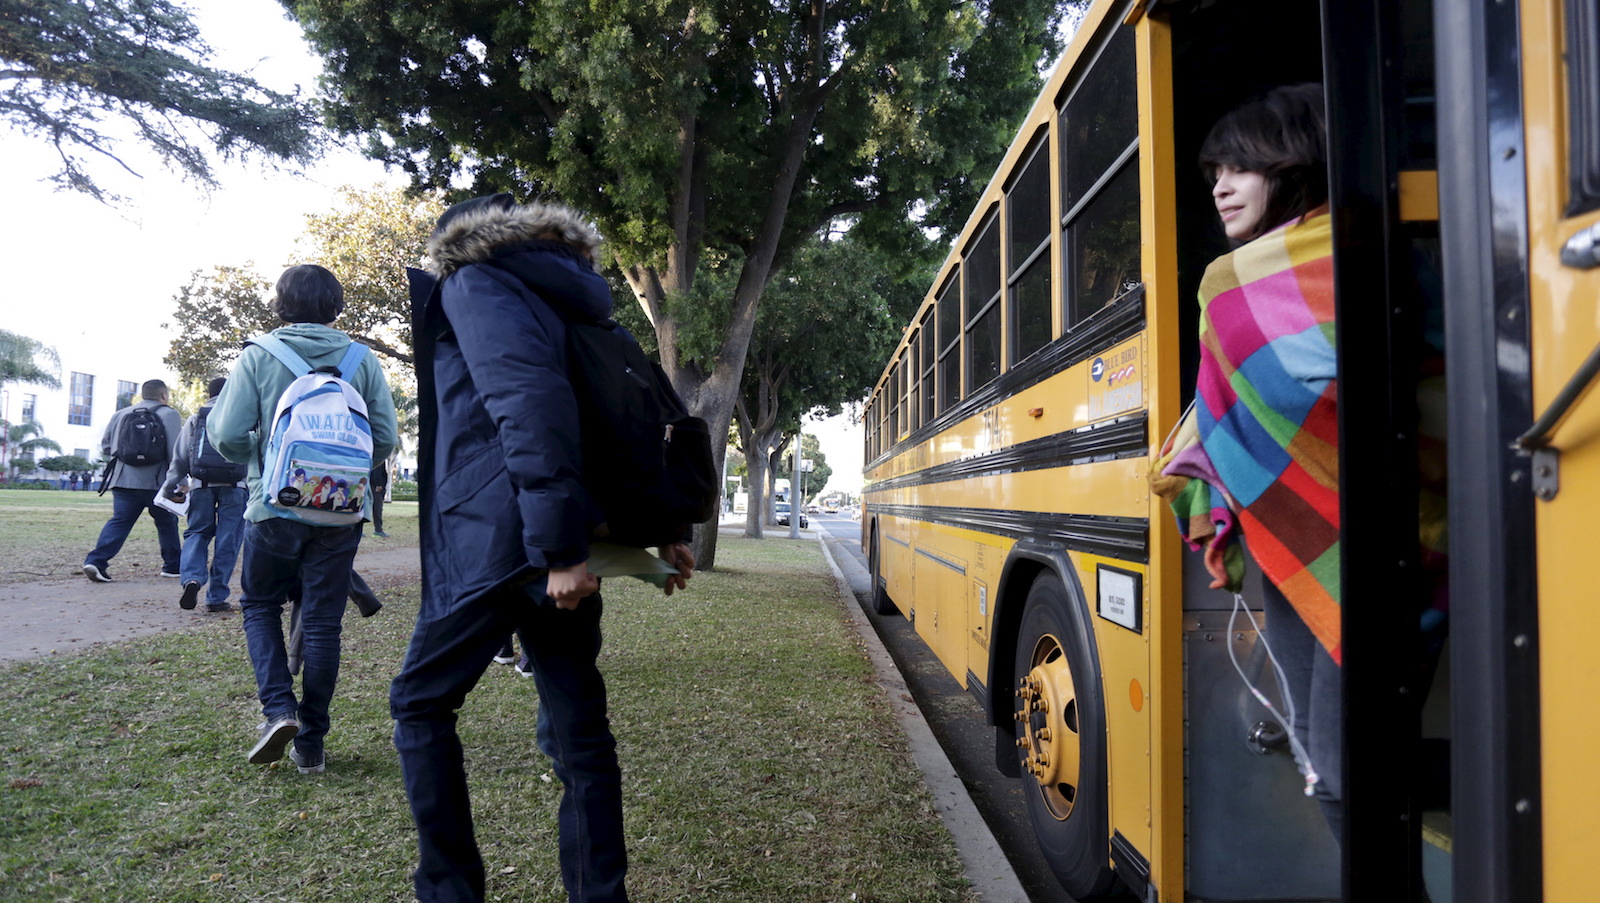 Students exit a bus as they arrive at Venice High School in Los Angeles, California December 16, 2015. Classes resume today in Los Angeles, the second largest school district in the United States,  after they were closed on Tuesday after officials reported receiving an unspecified threat to the district and ordered a search of all schools in the city. REUTERS/Jonathan Alcorn - RTX1YZF0